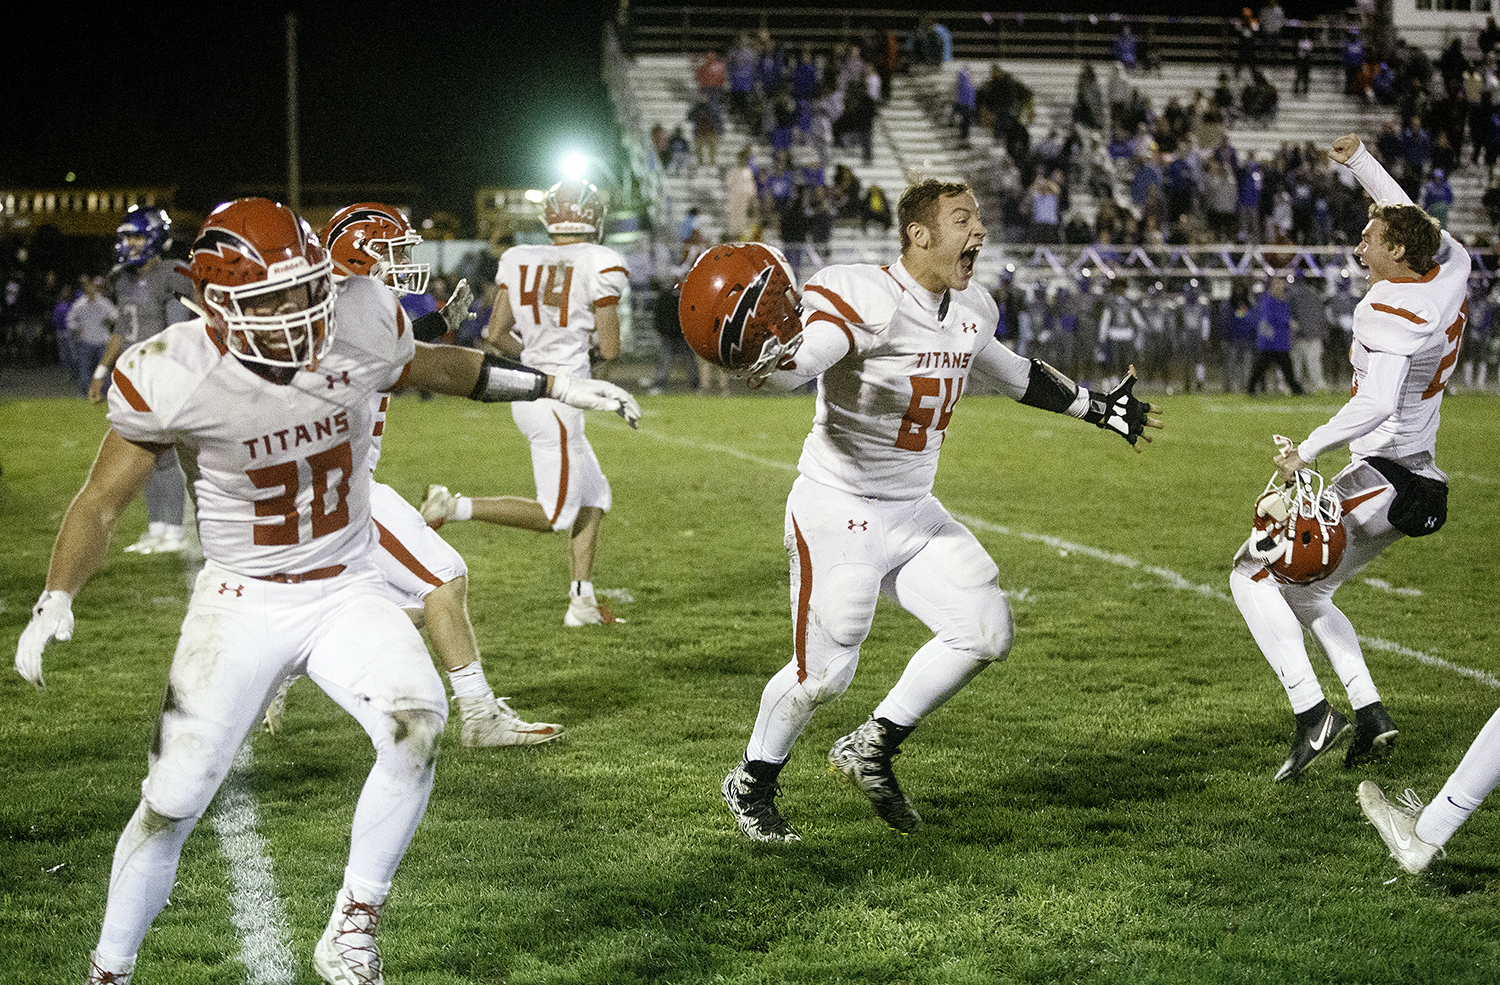 Glenwood's Sam Knepler and the Titans jump around as they celebrate their 39-32 overtime win at Decatur MacArthur High School Friday, Sept. 28, 2018. The Titans remain undefeated for the season. [Ted Schurter/The State Journal-Register]